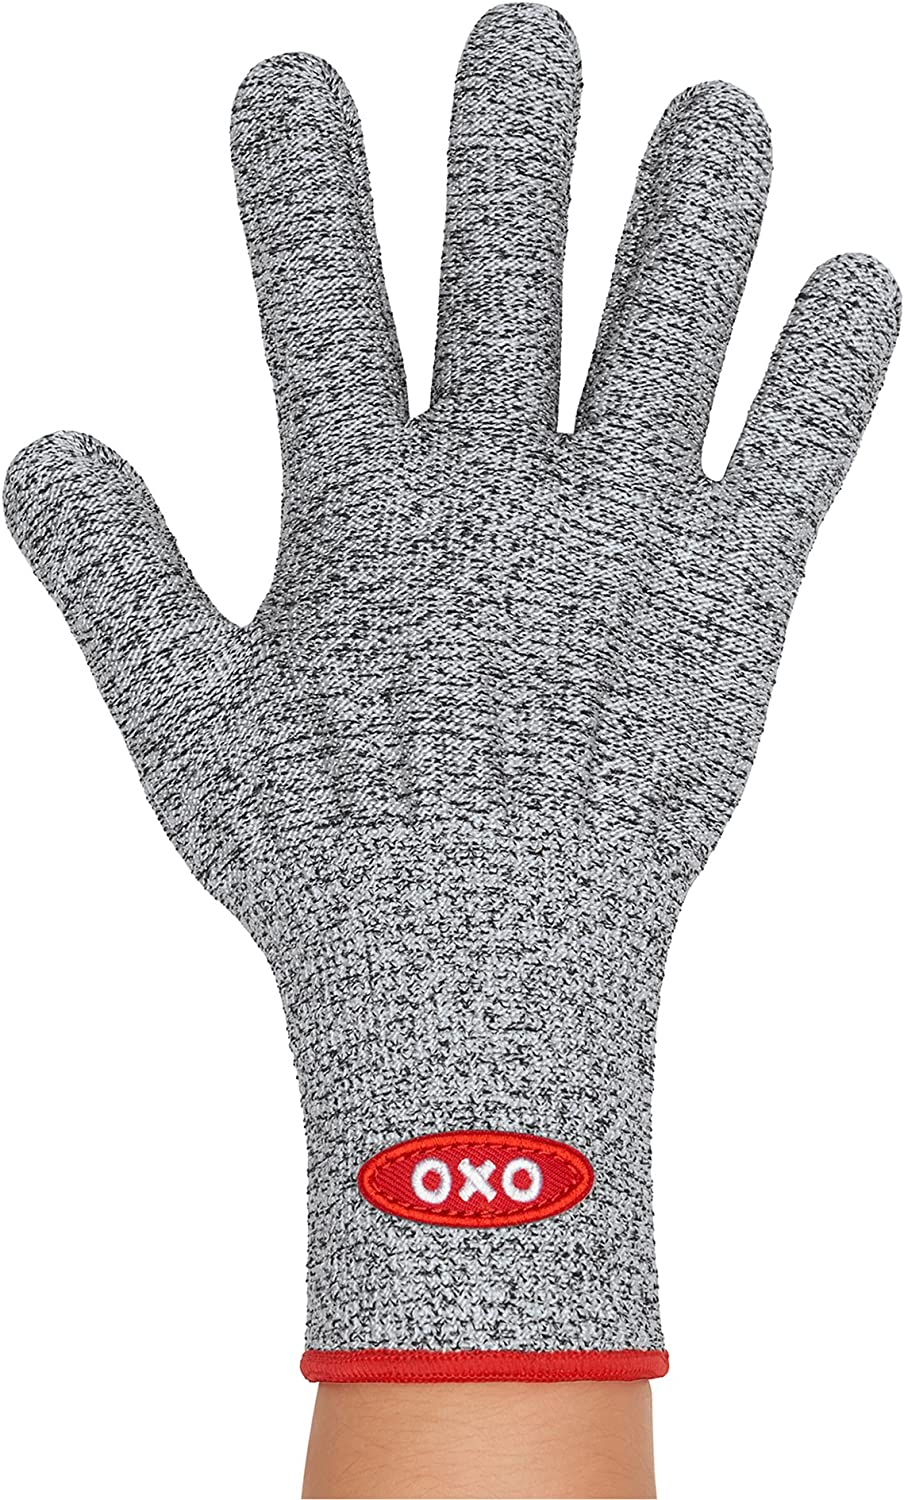 OXO Good Grips Cut Resistant Gloves